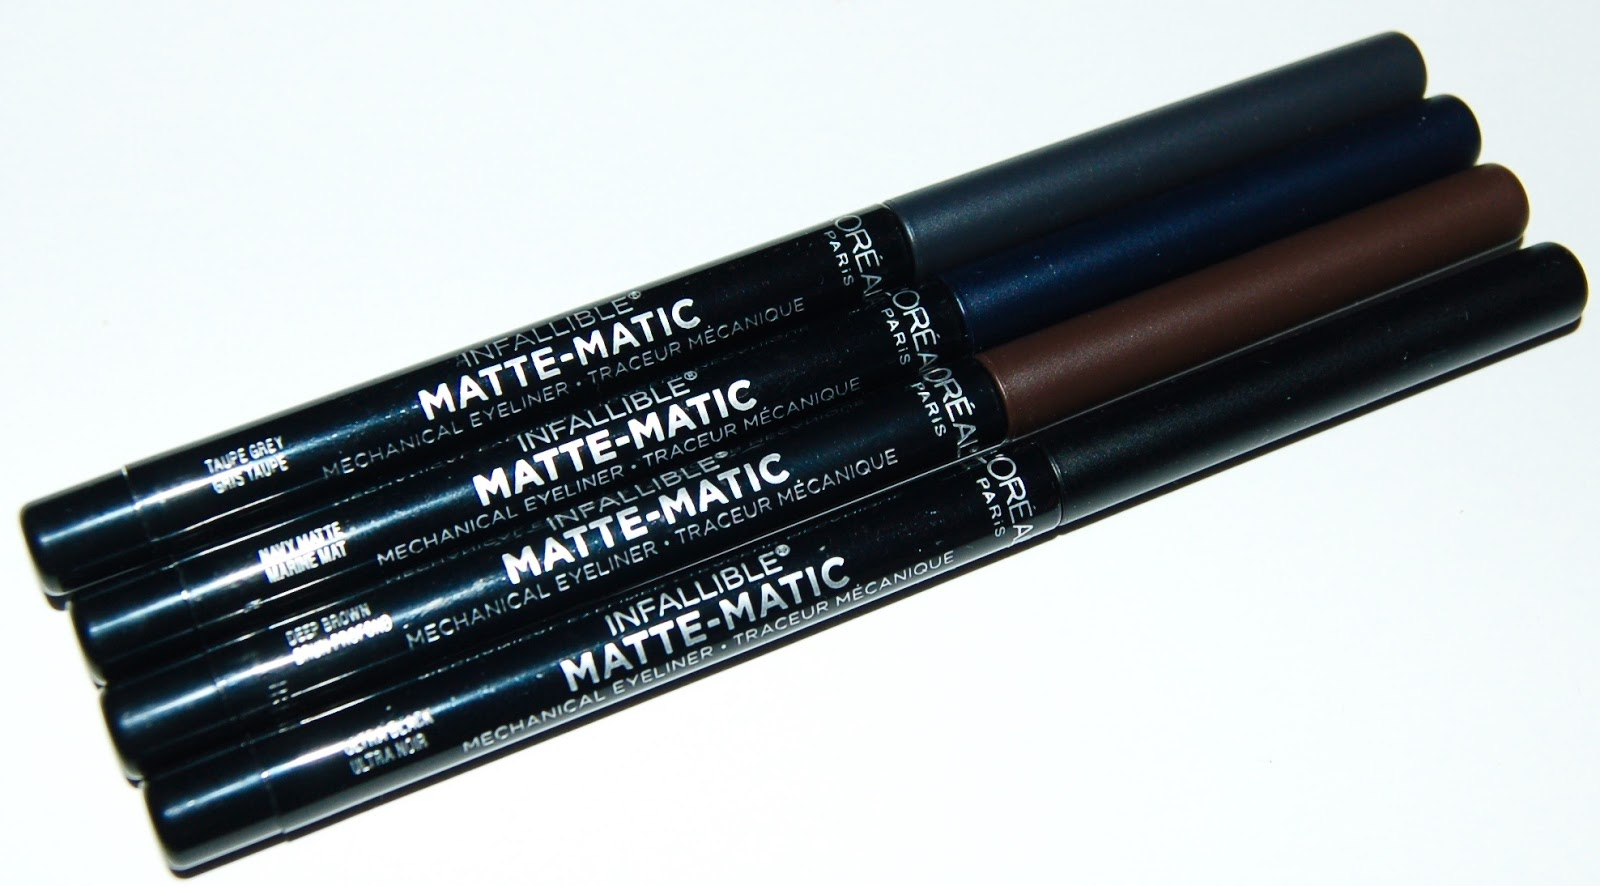 L'Oreal Infallible Matte-Matic Eyeliners